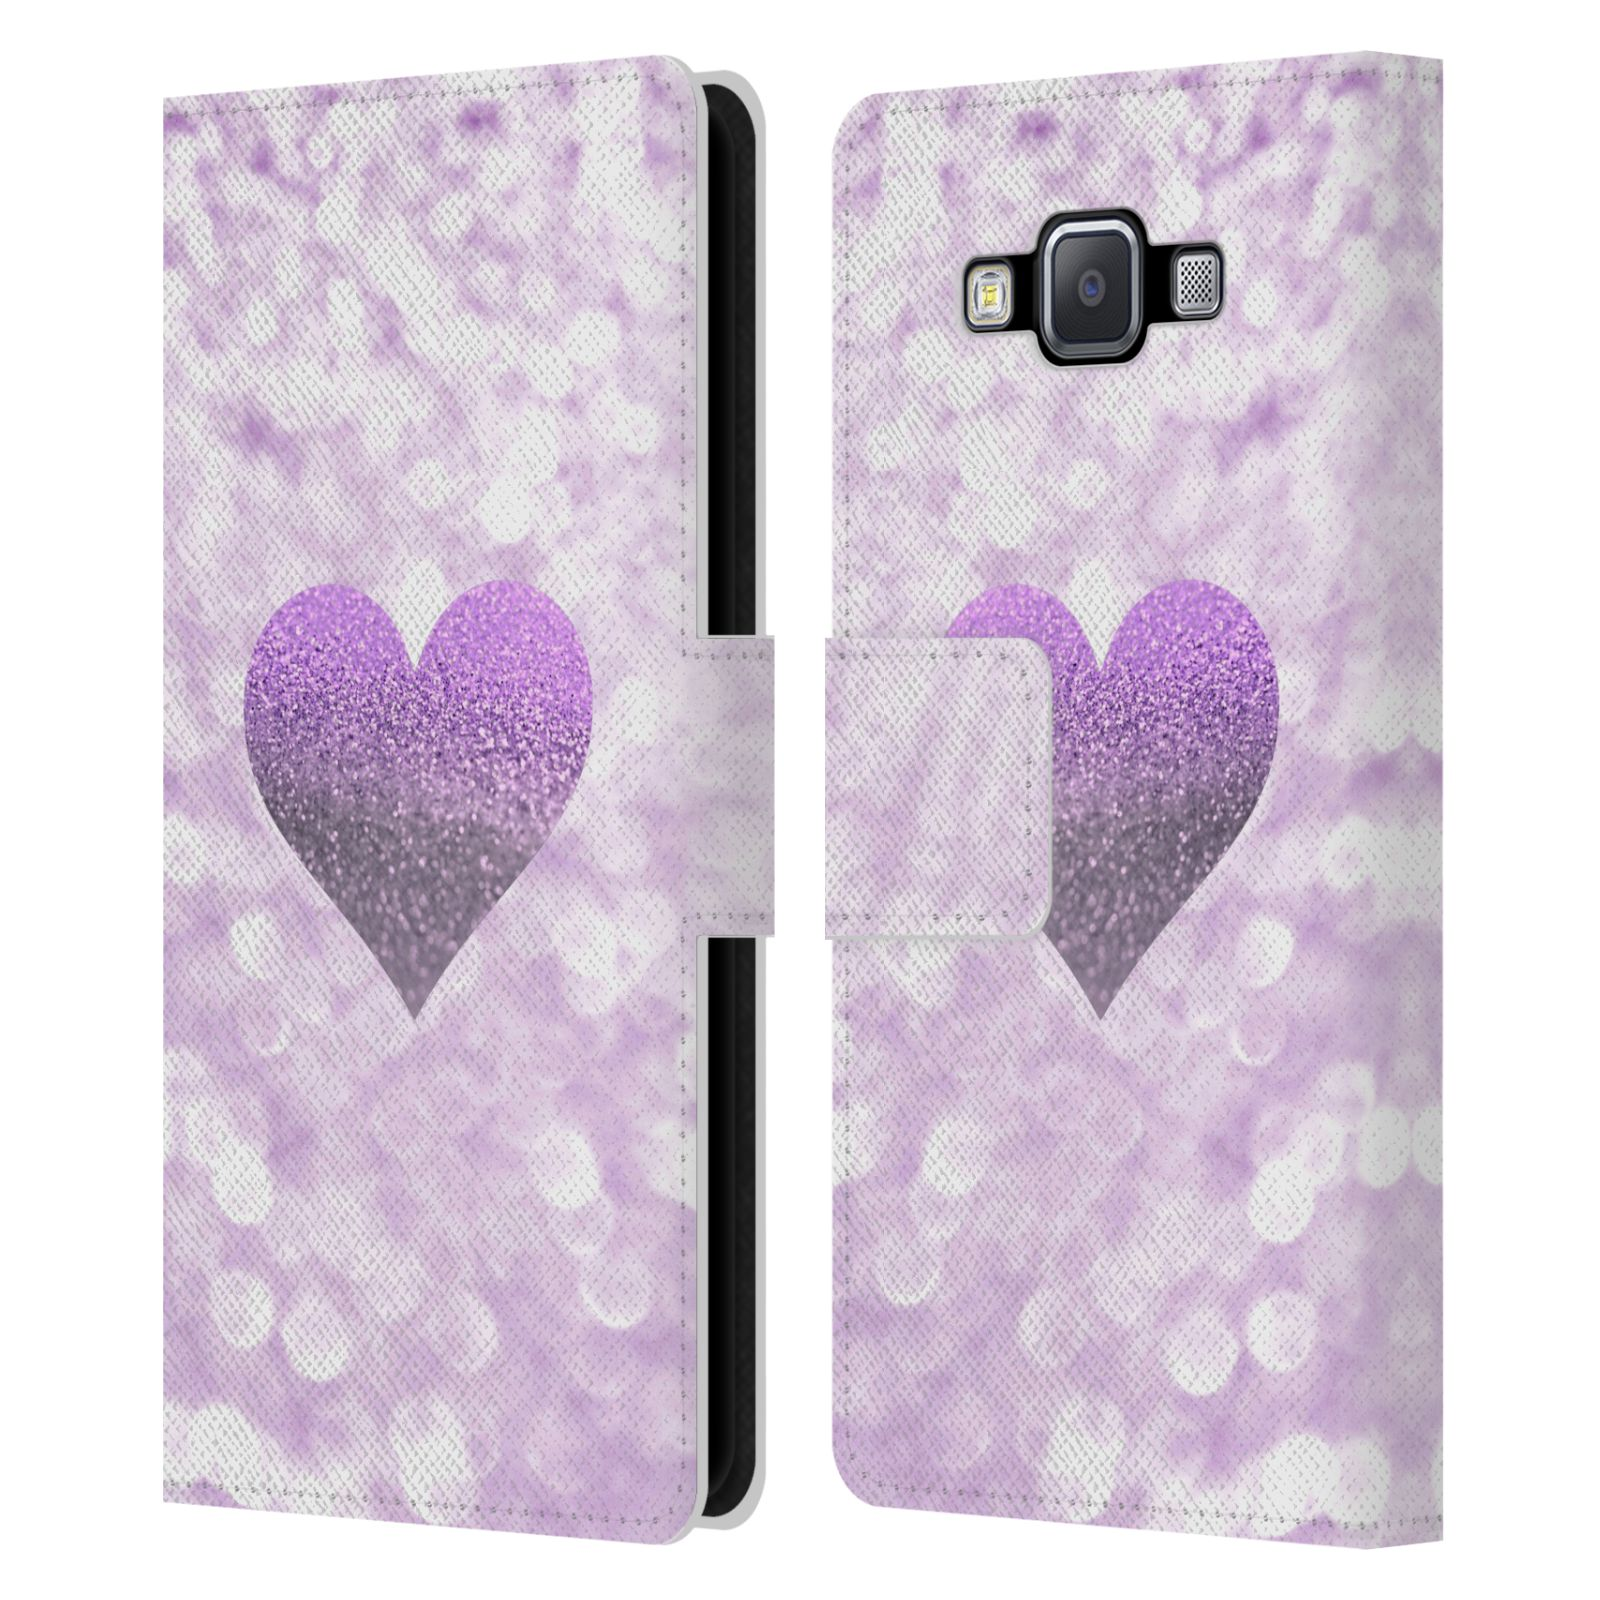 MONIKA-STRIGEL-CHAMPAGNE-GLITTERS-2-LEATHER-BOOK-CASE-FOR-SAMSUNG-PHONES-2